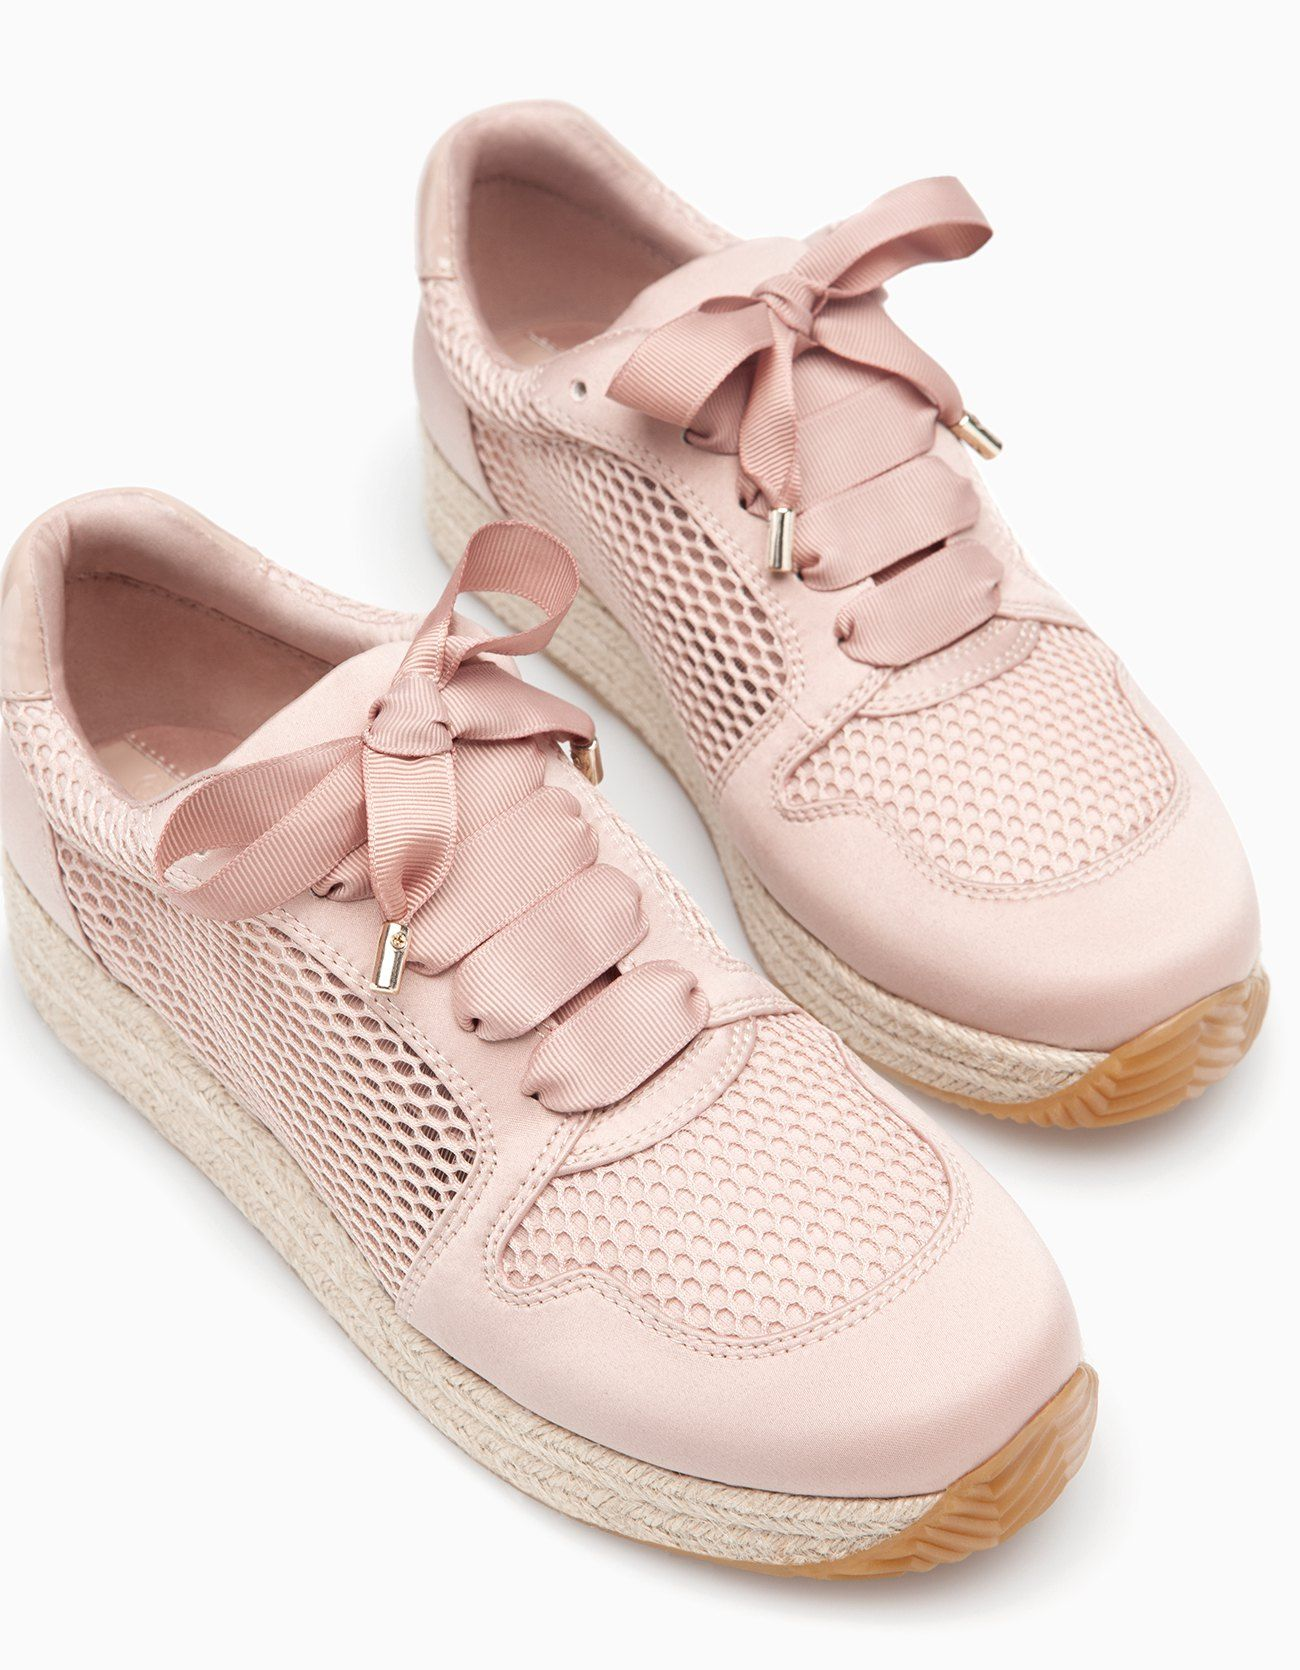 At Stradivarius you'll find 1 Jute sneakers for woman for just 699 MXN .